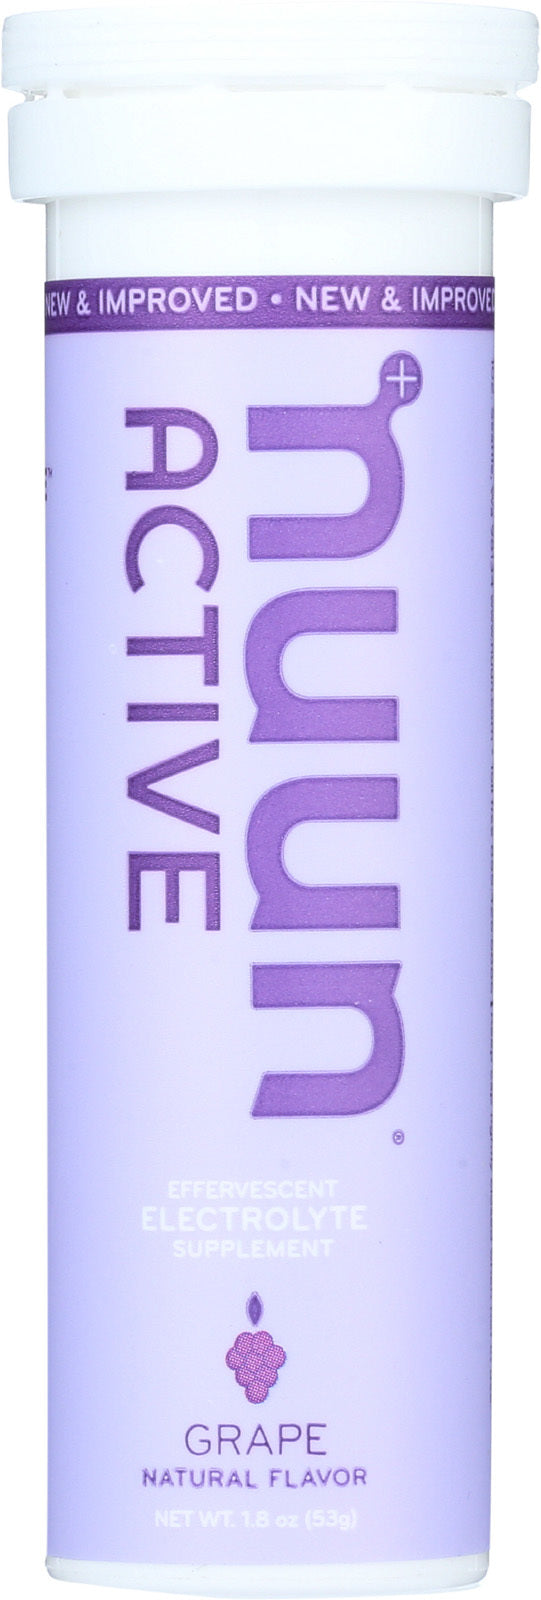 Nuun Hydration Drink Tab - Active - Grape - 10 Tablets - Case of 8